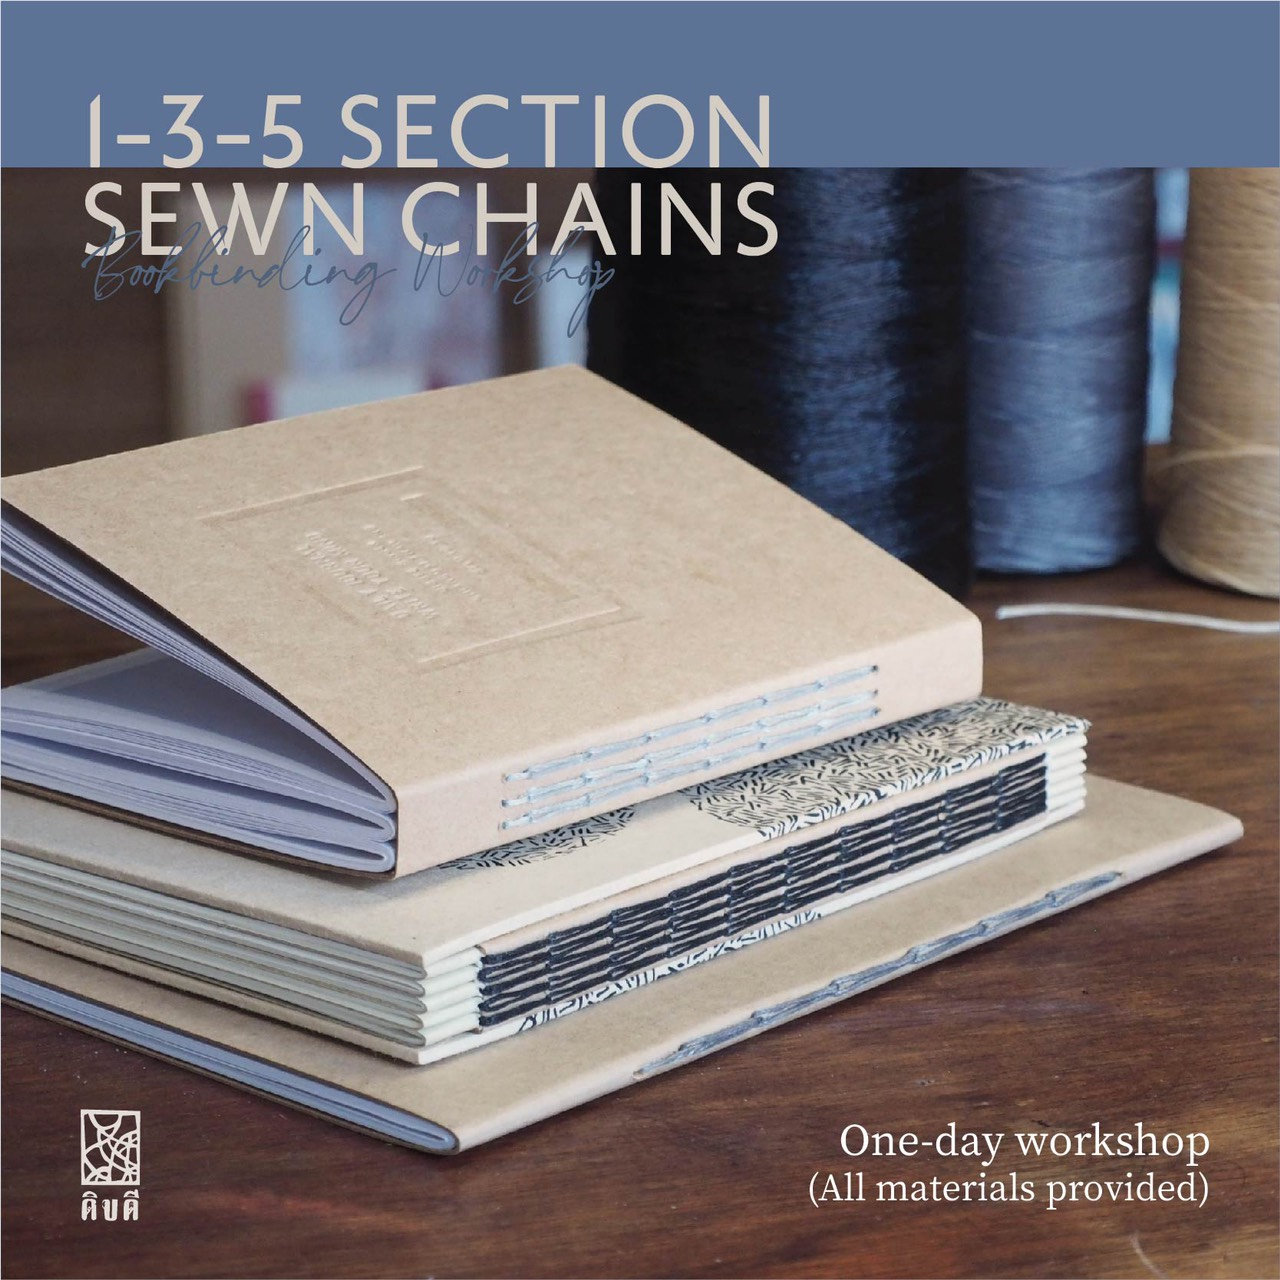 1-3-5 section sewn chains